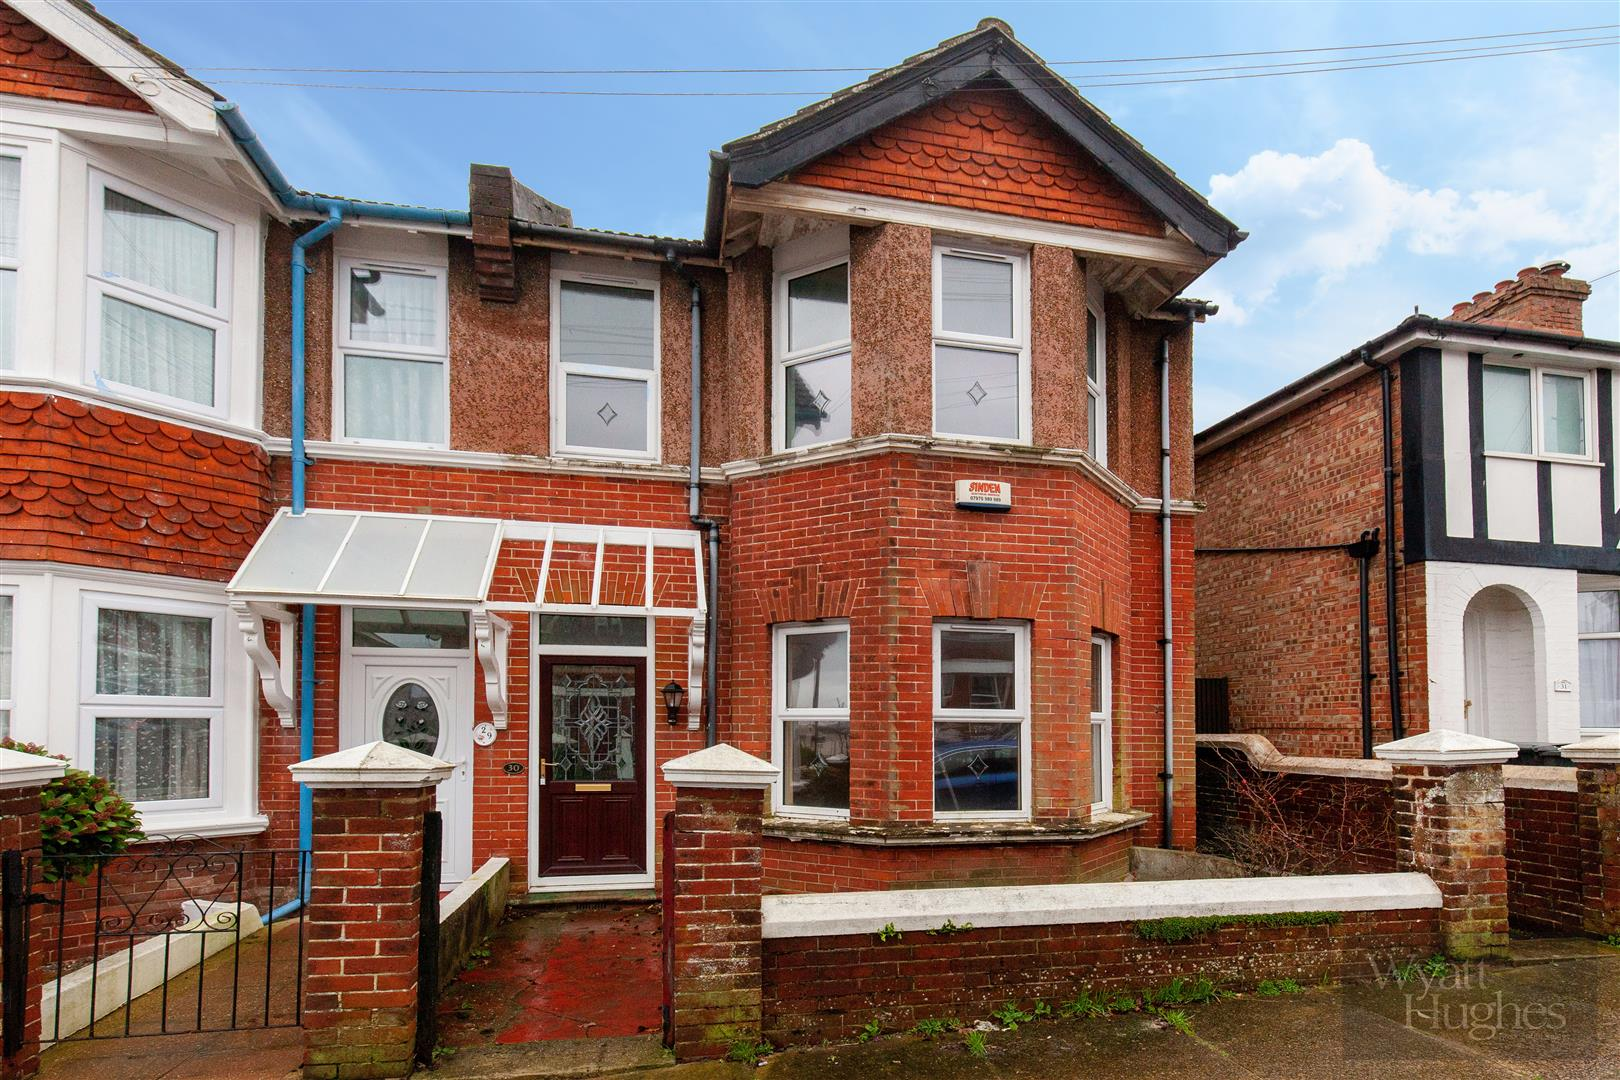 3 bed end-of-terrace-house for sale in Burry Road, St. Leonards-On-Sea 24